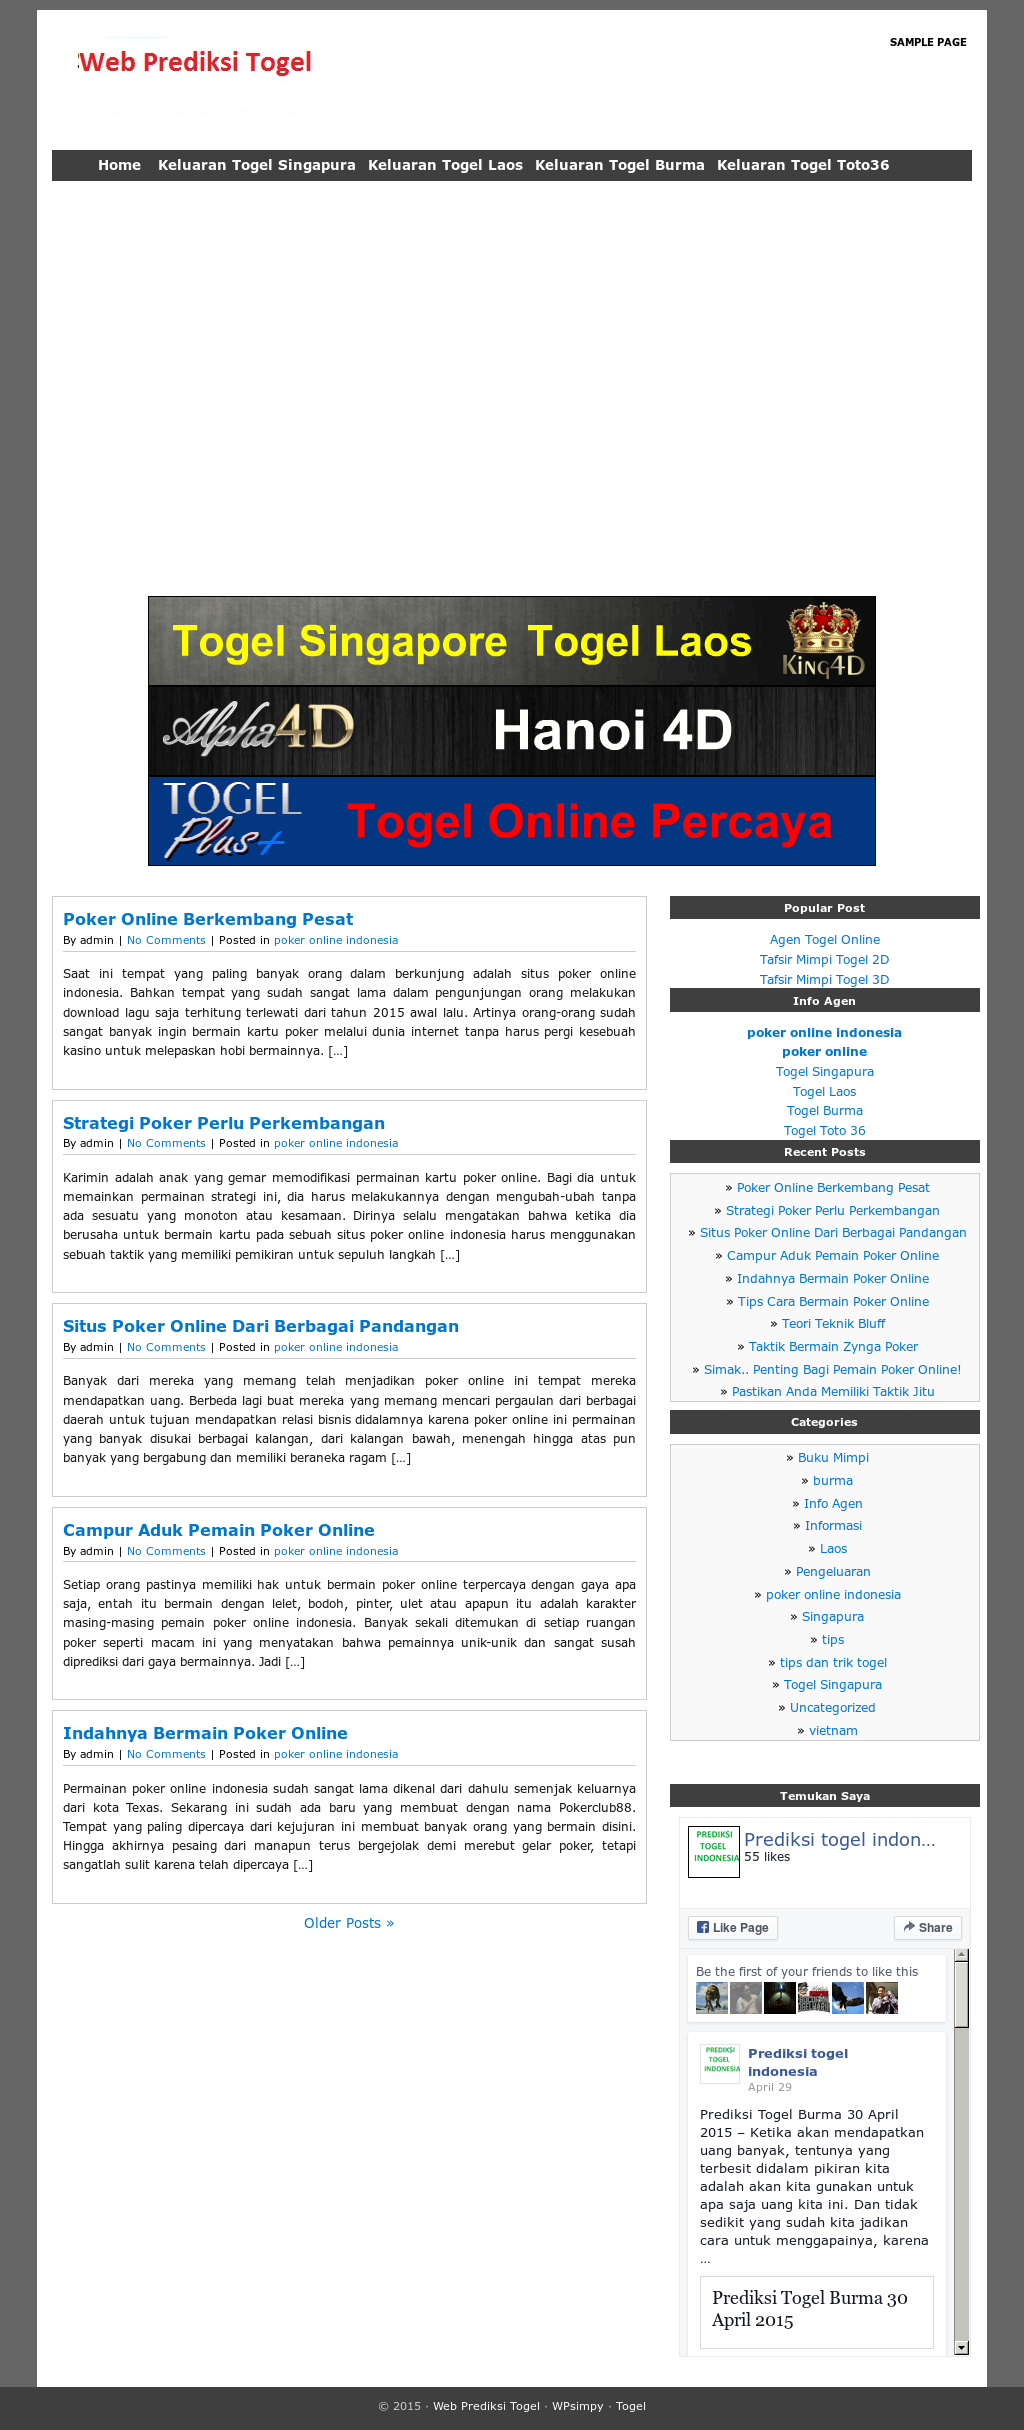 Prediksi Togel Indonesia S Competitors Revenue Number Of Employees Funding Acquisitions News Owler Company Profile